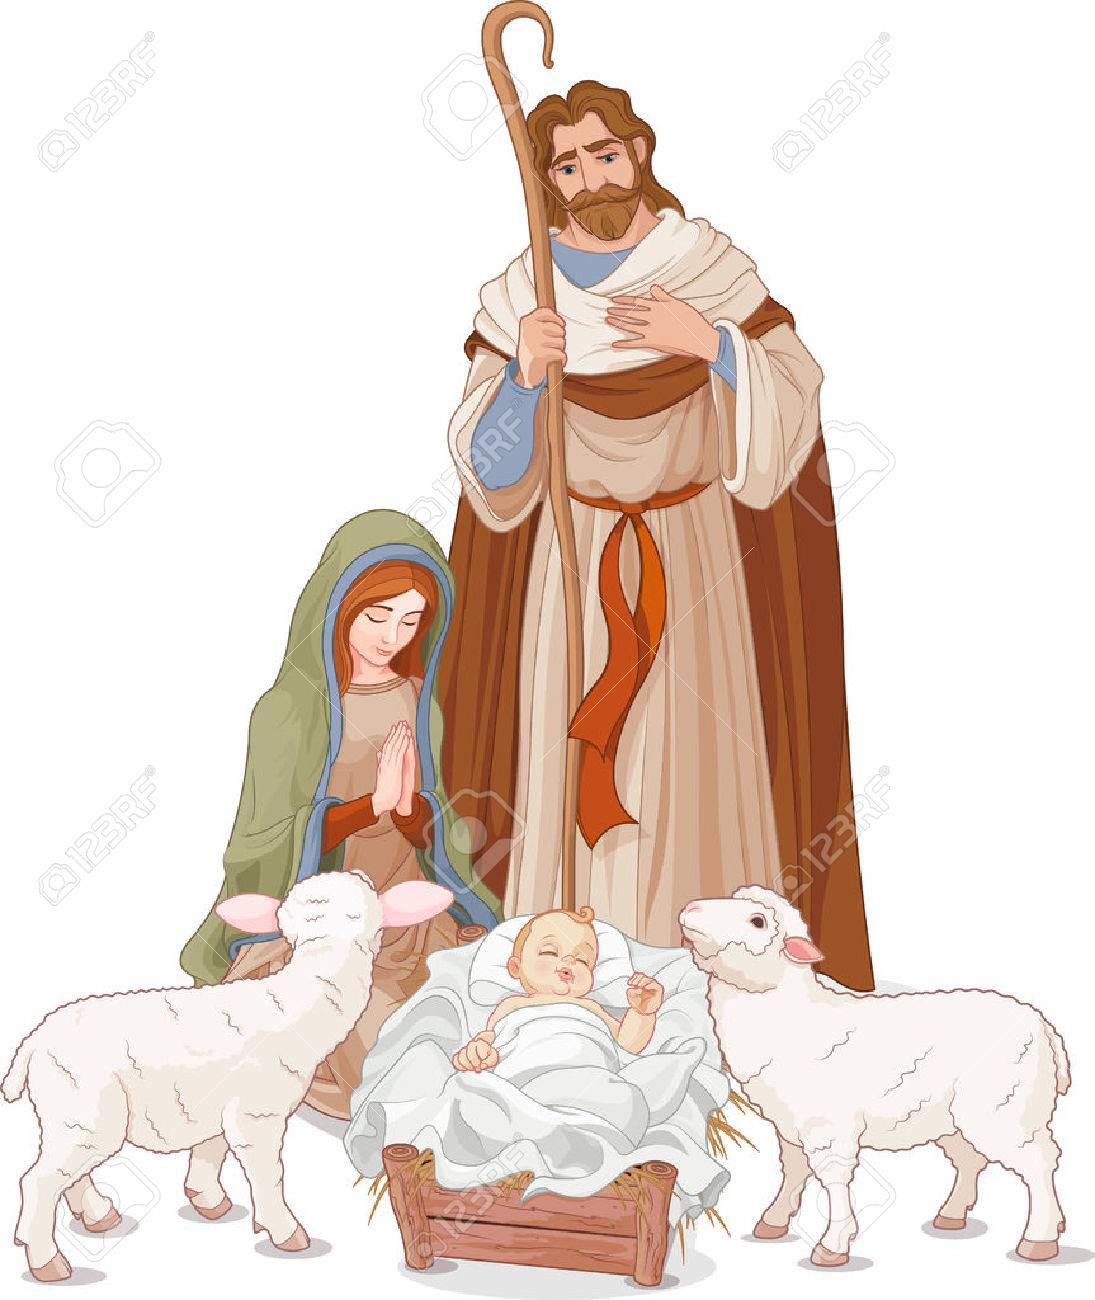 Christmas nativity scene with Mary, Joseph and baby Jesus Banque d'images - 67409736